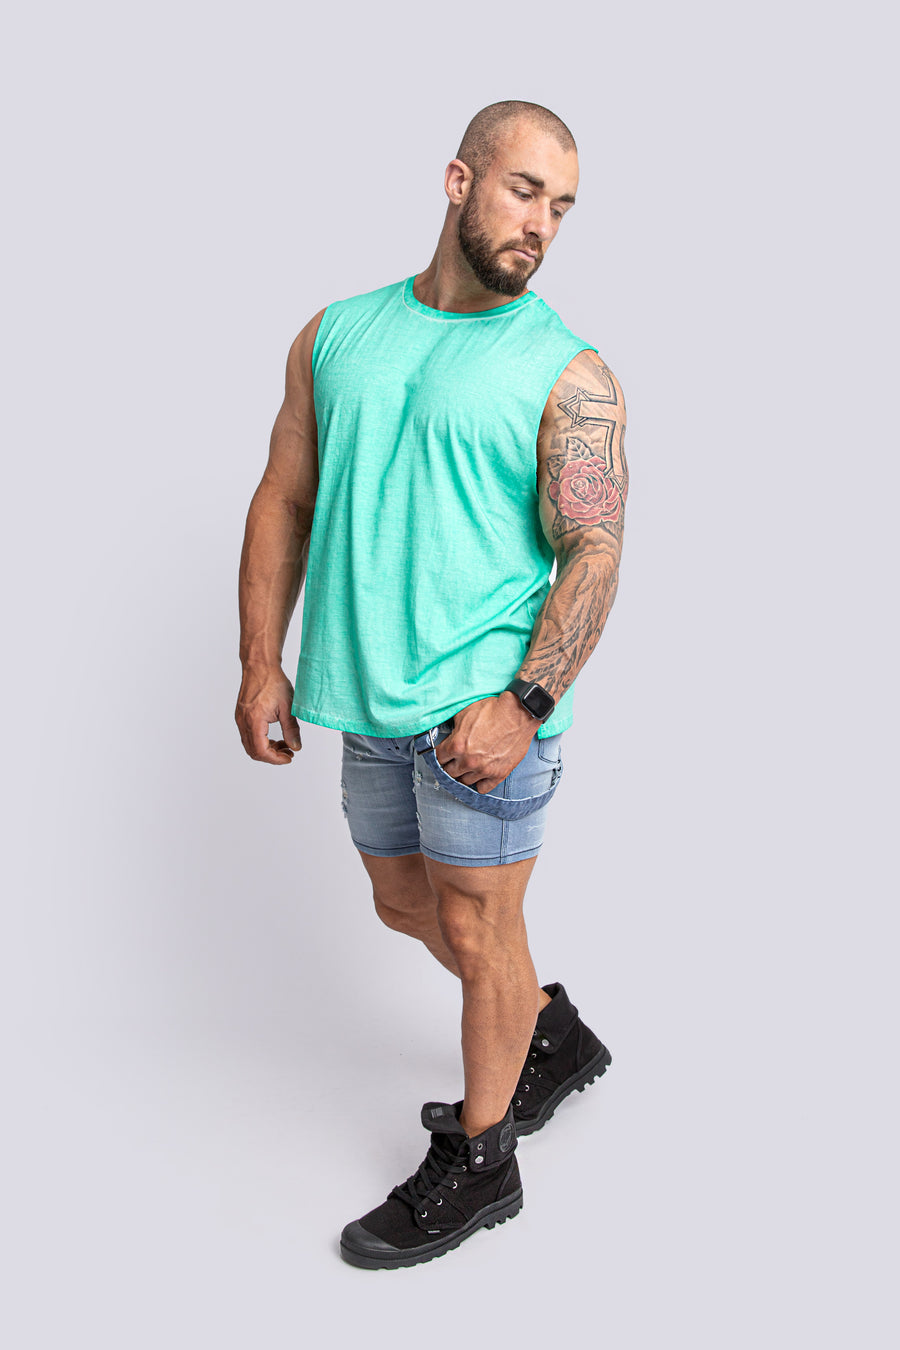 FRANK MINT GREEN TANK TOP